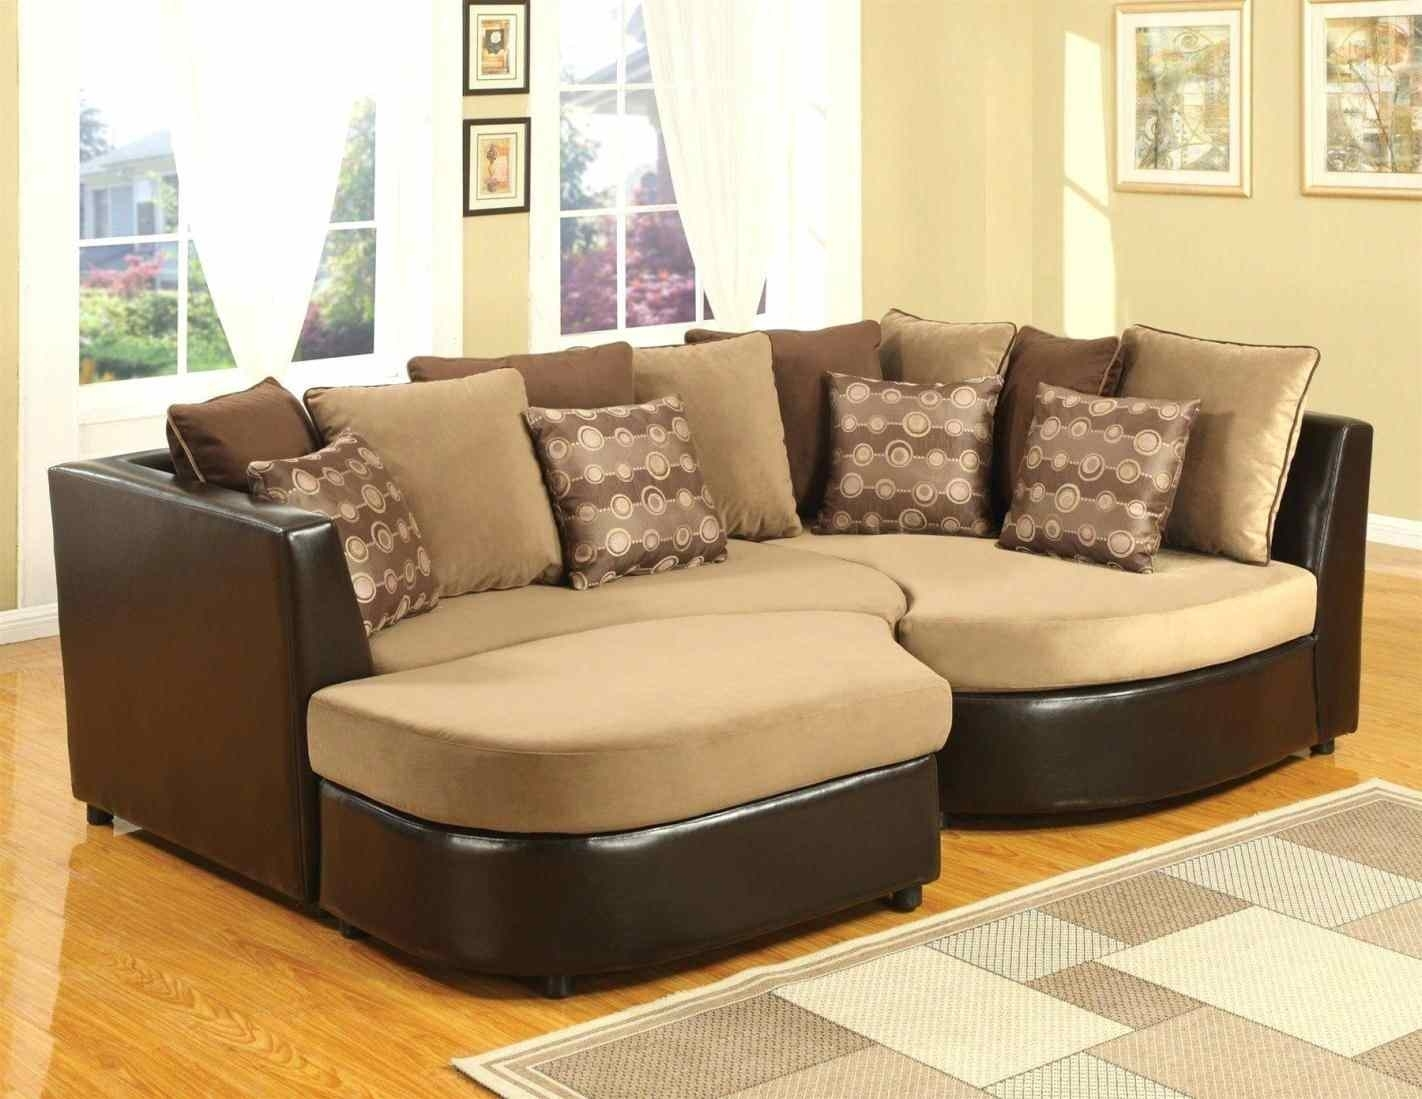 Couch : Furniture Bad Boy Sectional Es Wrap Around Couch Furniture inside Sectional Sofas at Bad Boy